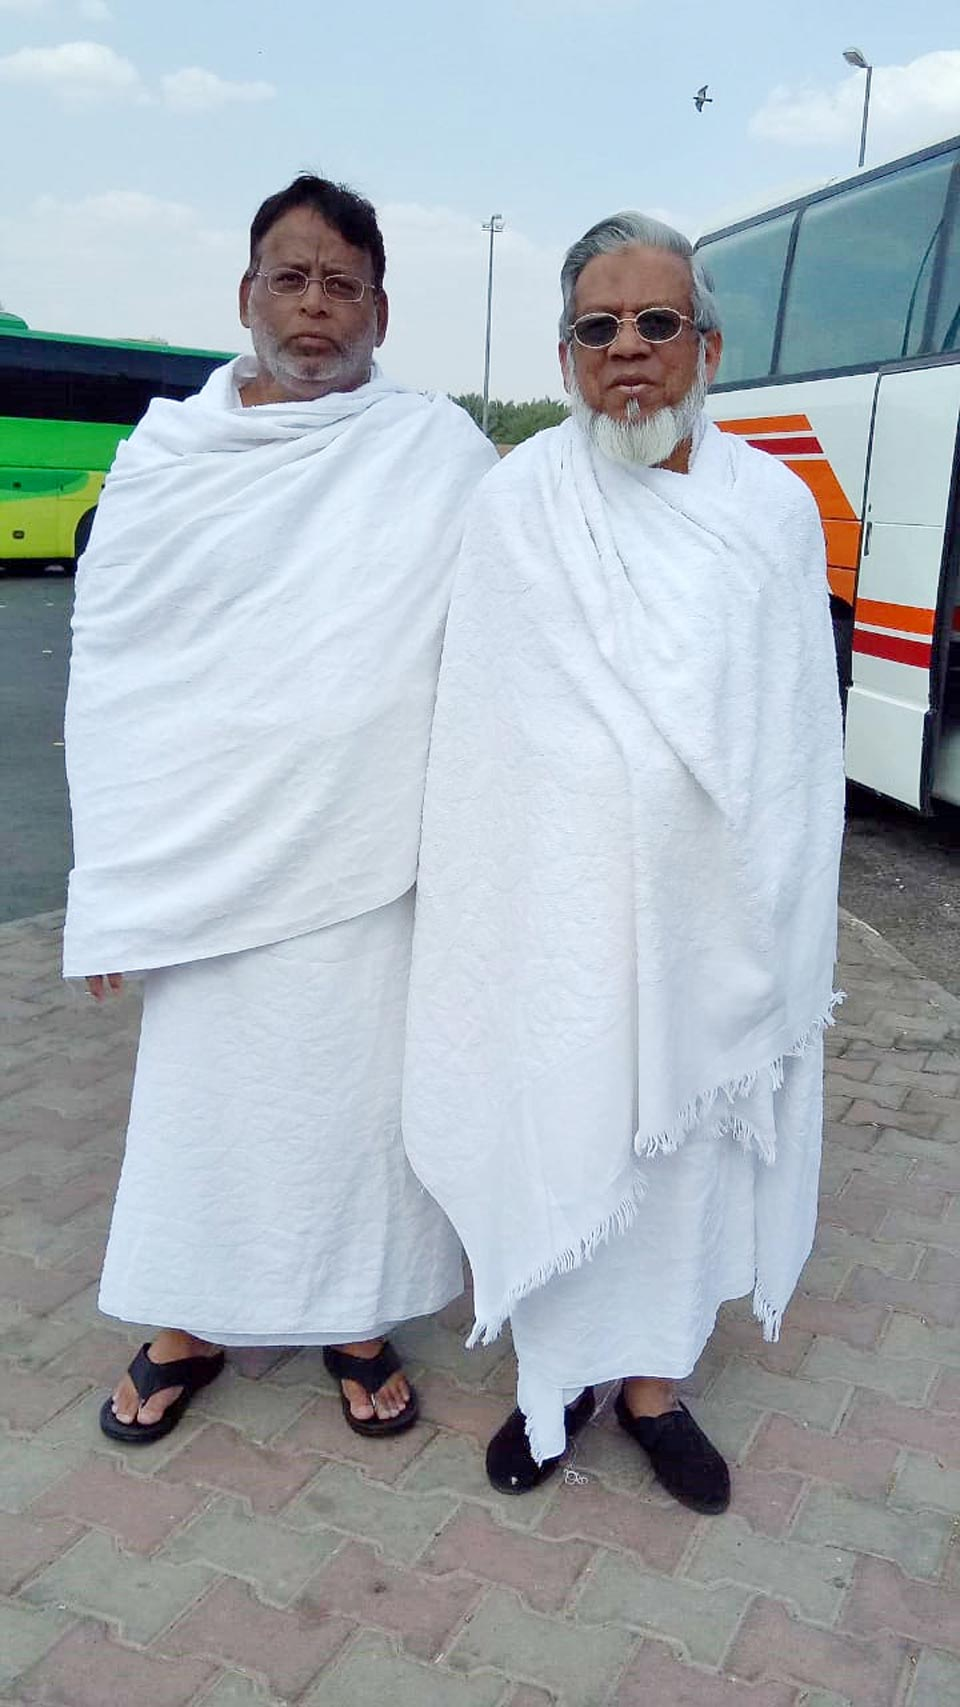 Dr. Ata Ur Rehman and Engr. Iqbal Ahmed Khan in Ihram ready to leave for Makkah at Meekat